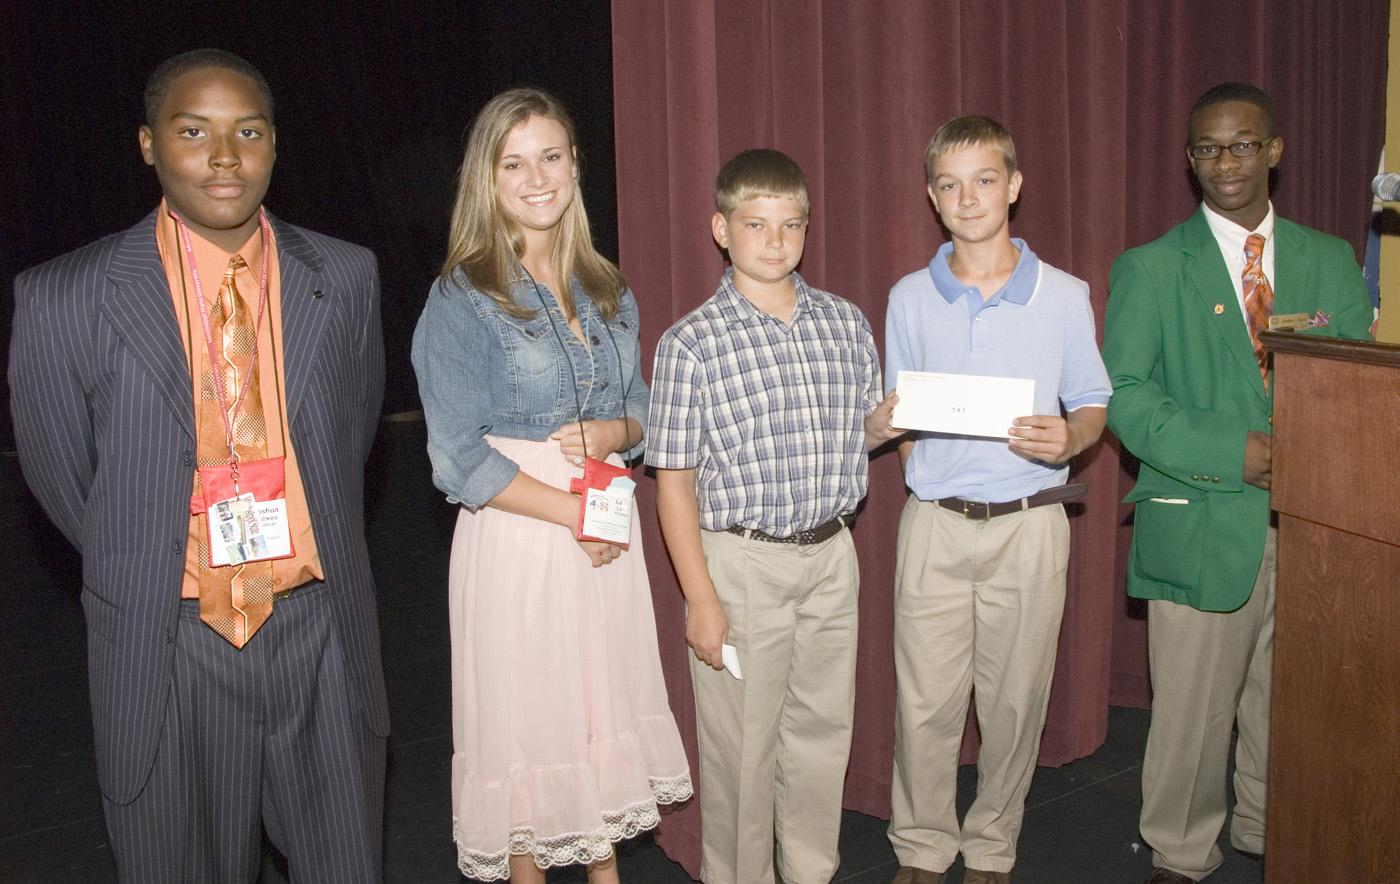 Joshua Holmes of Walthall County, from left, and Laci Lunn of Pontotoc County, represented the state's top two fund-raising counties at the 2007 4-H Congress. They presented a check to Alabama 4-H members Buddy Skipper and Ben Jones, both sixth graders from Enterprise. Leadership Team member Cord Davis of Bolivar County assisted in the presentation. (Photo by Marco Nicovich/MSU Ag Communications) Larger view.